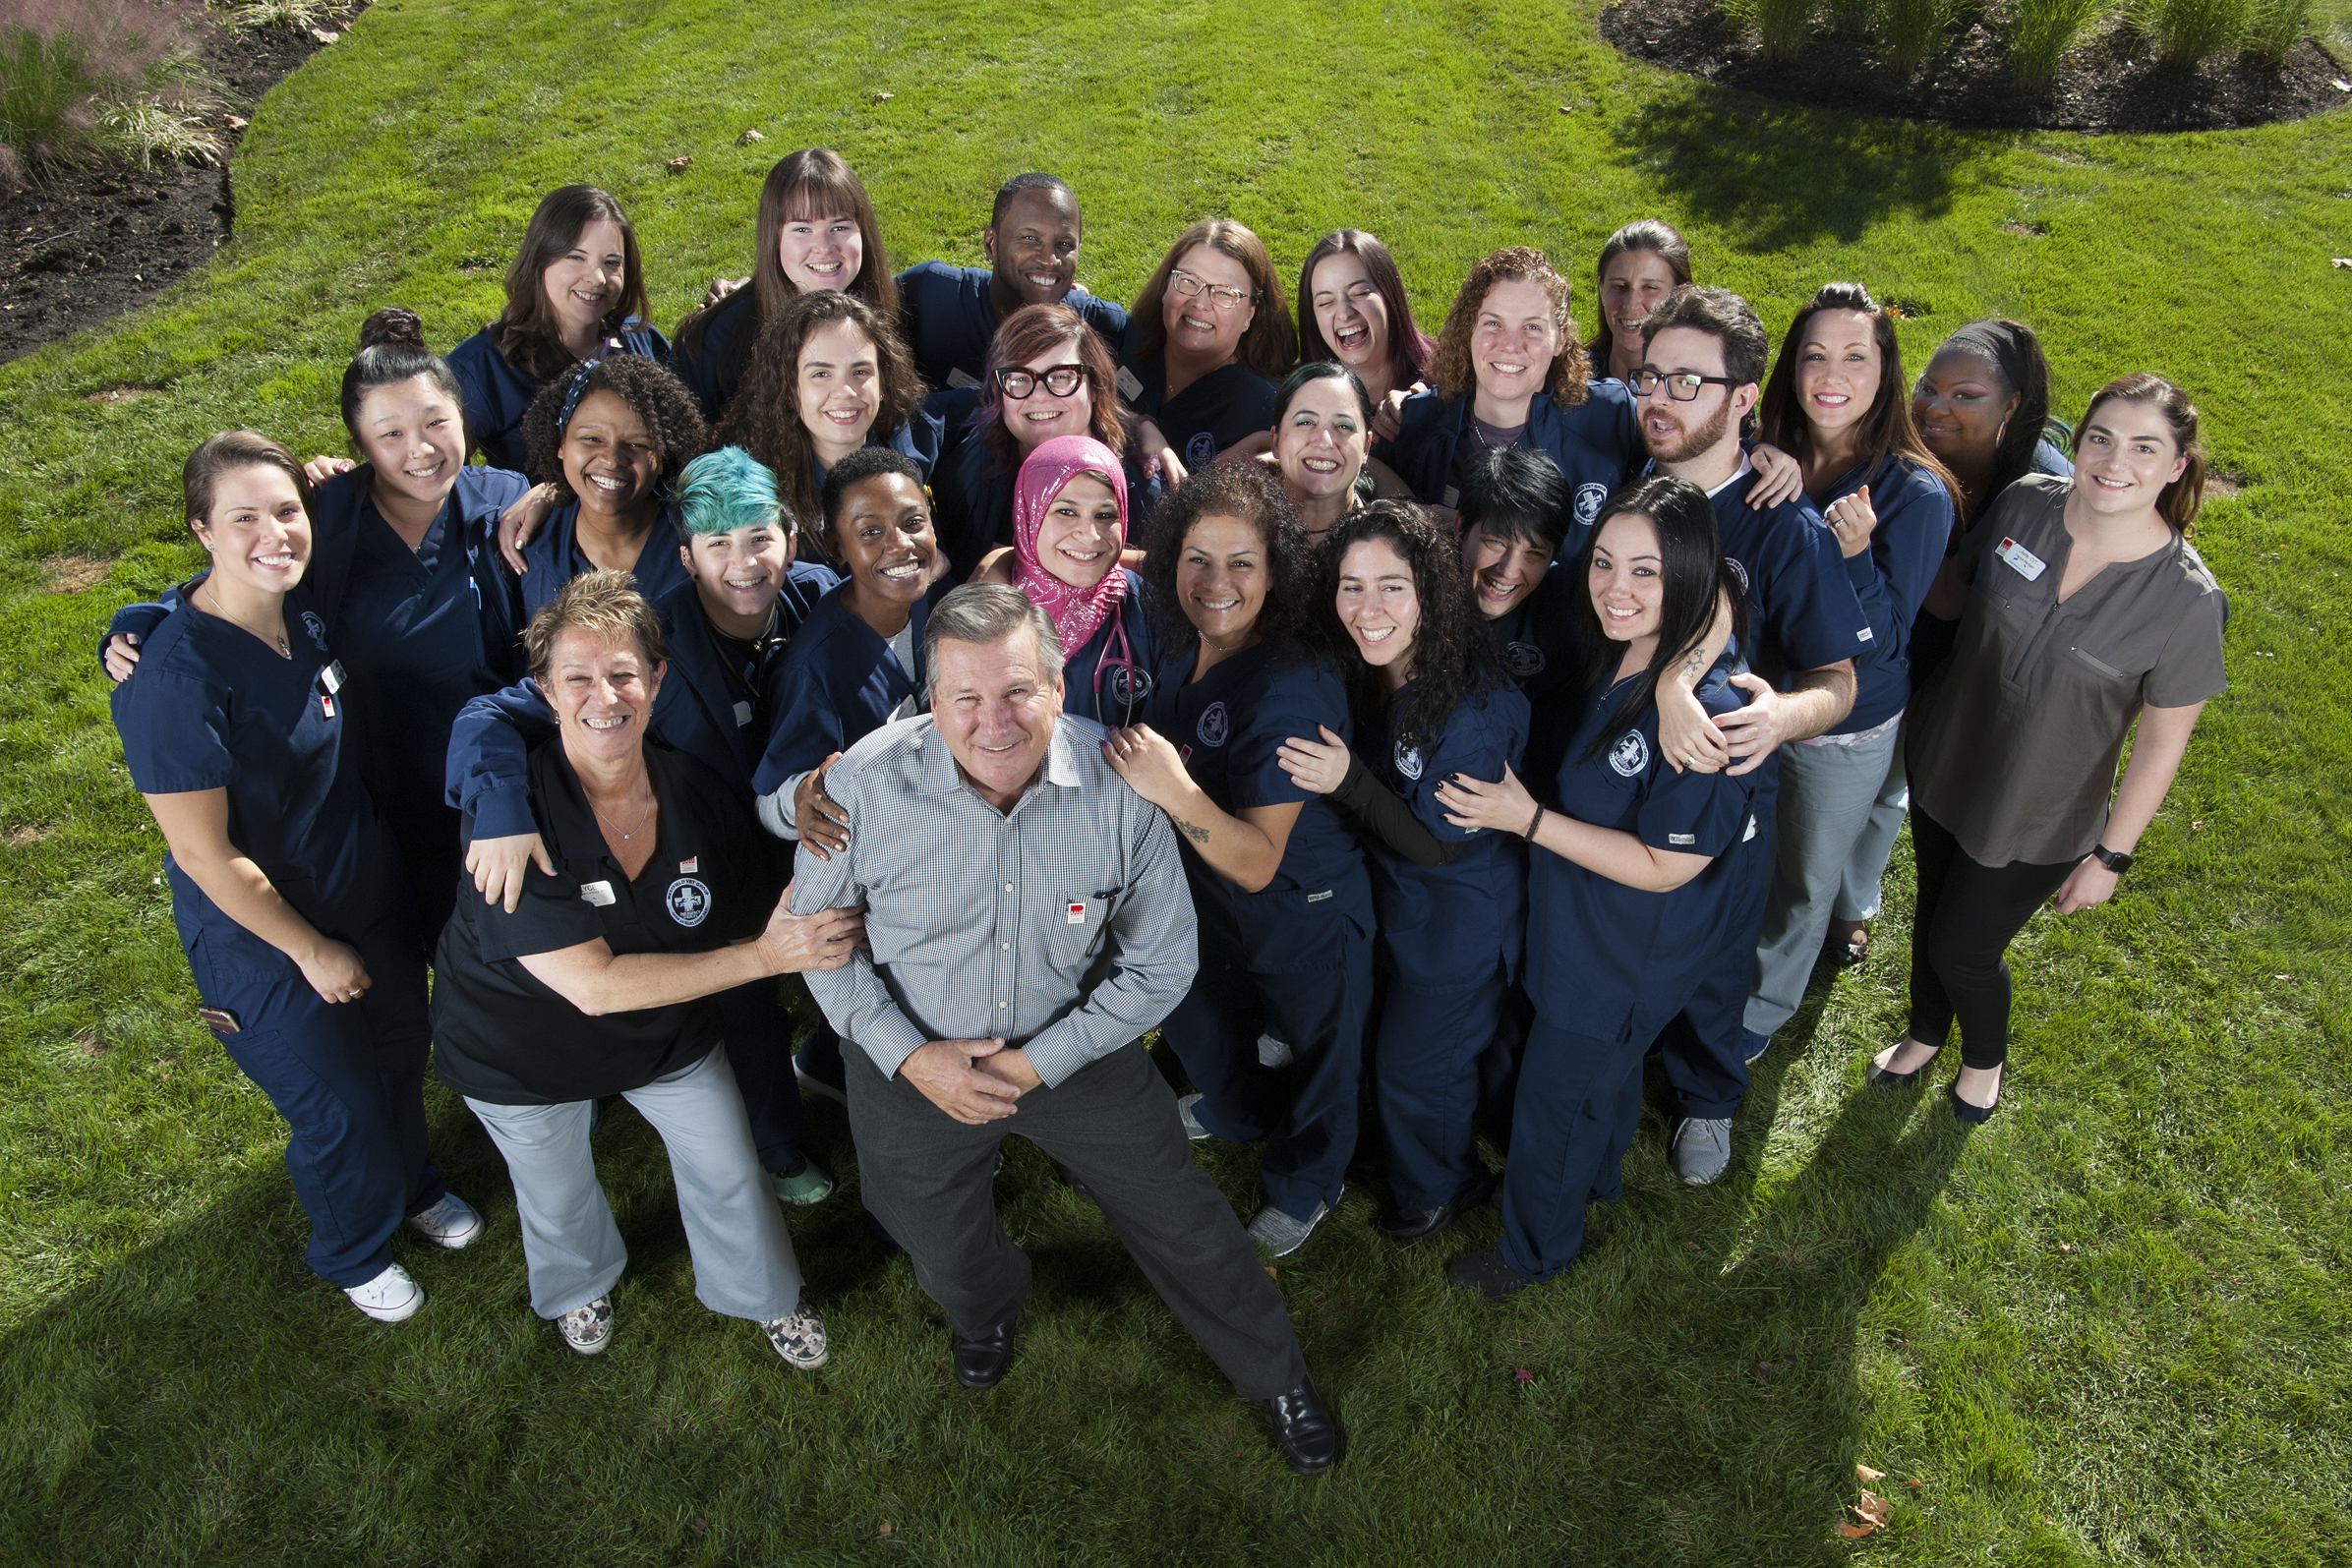 Westfield Veterinary Group AAHA Photoshoot